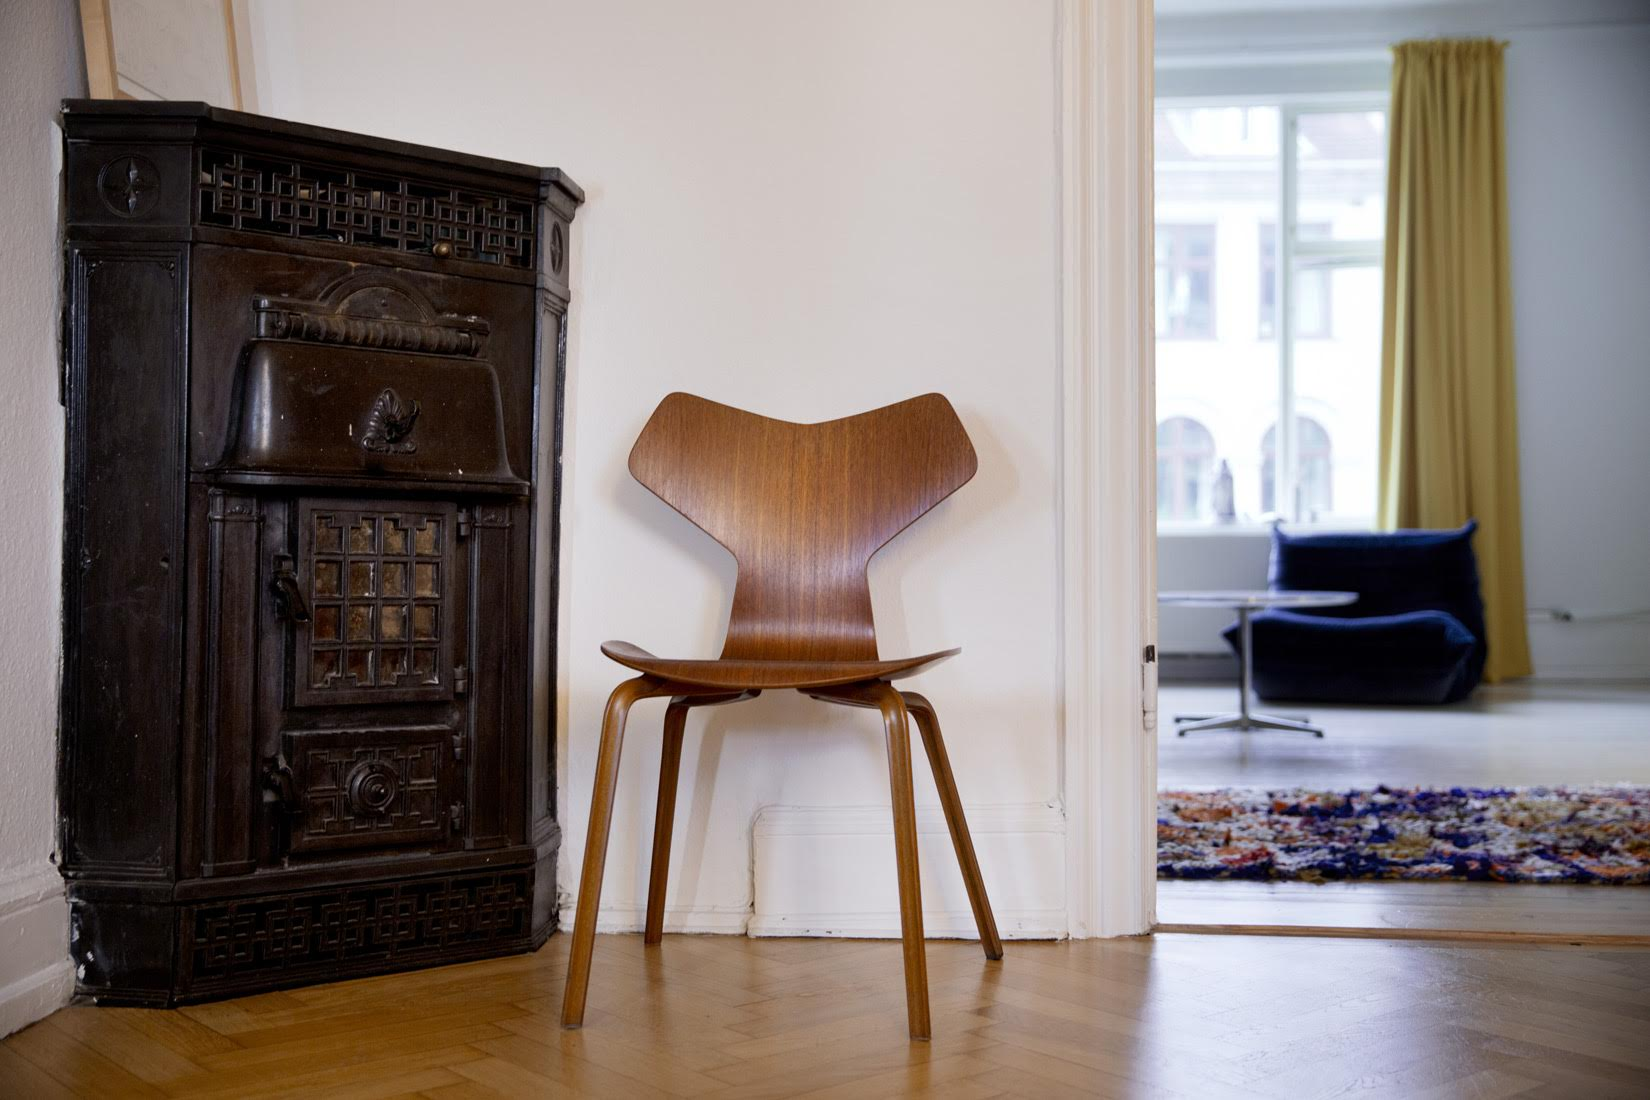 Fireplace and chair. Kasper Bjorke and Fie Paruup, How I live, The Spaces. Photography Anne Mie Dreves